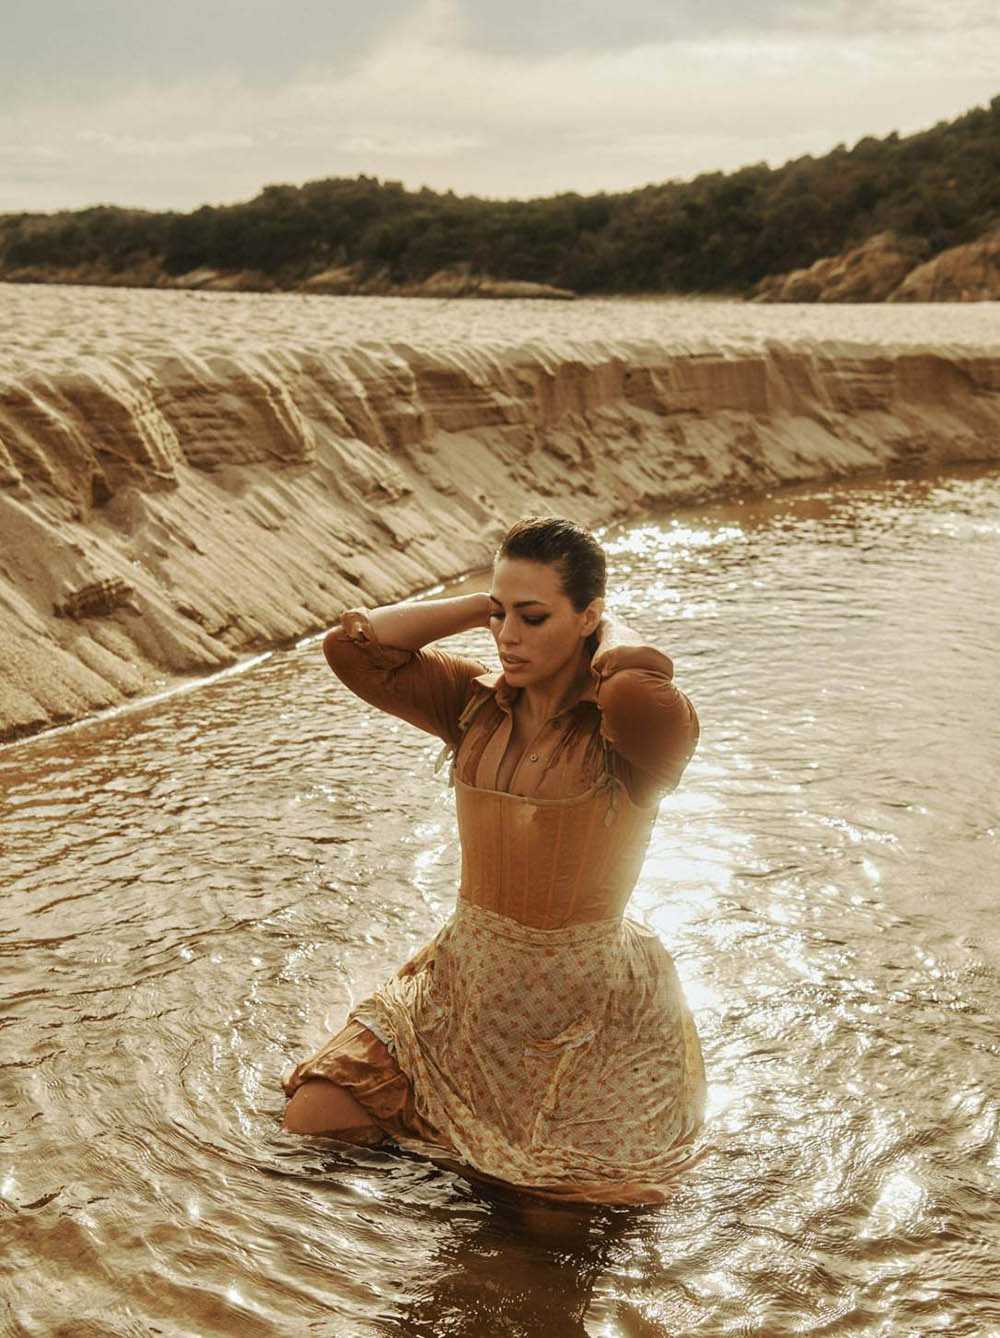 Ashley-Graham-by-Lachlan-Bailey-for-Vogue-Paris-November-2018-15.jpg